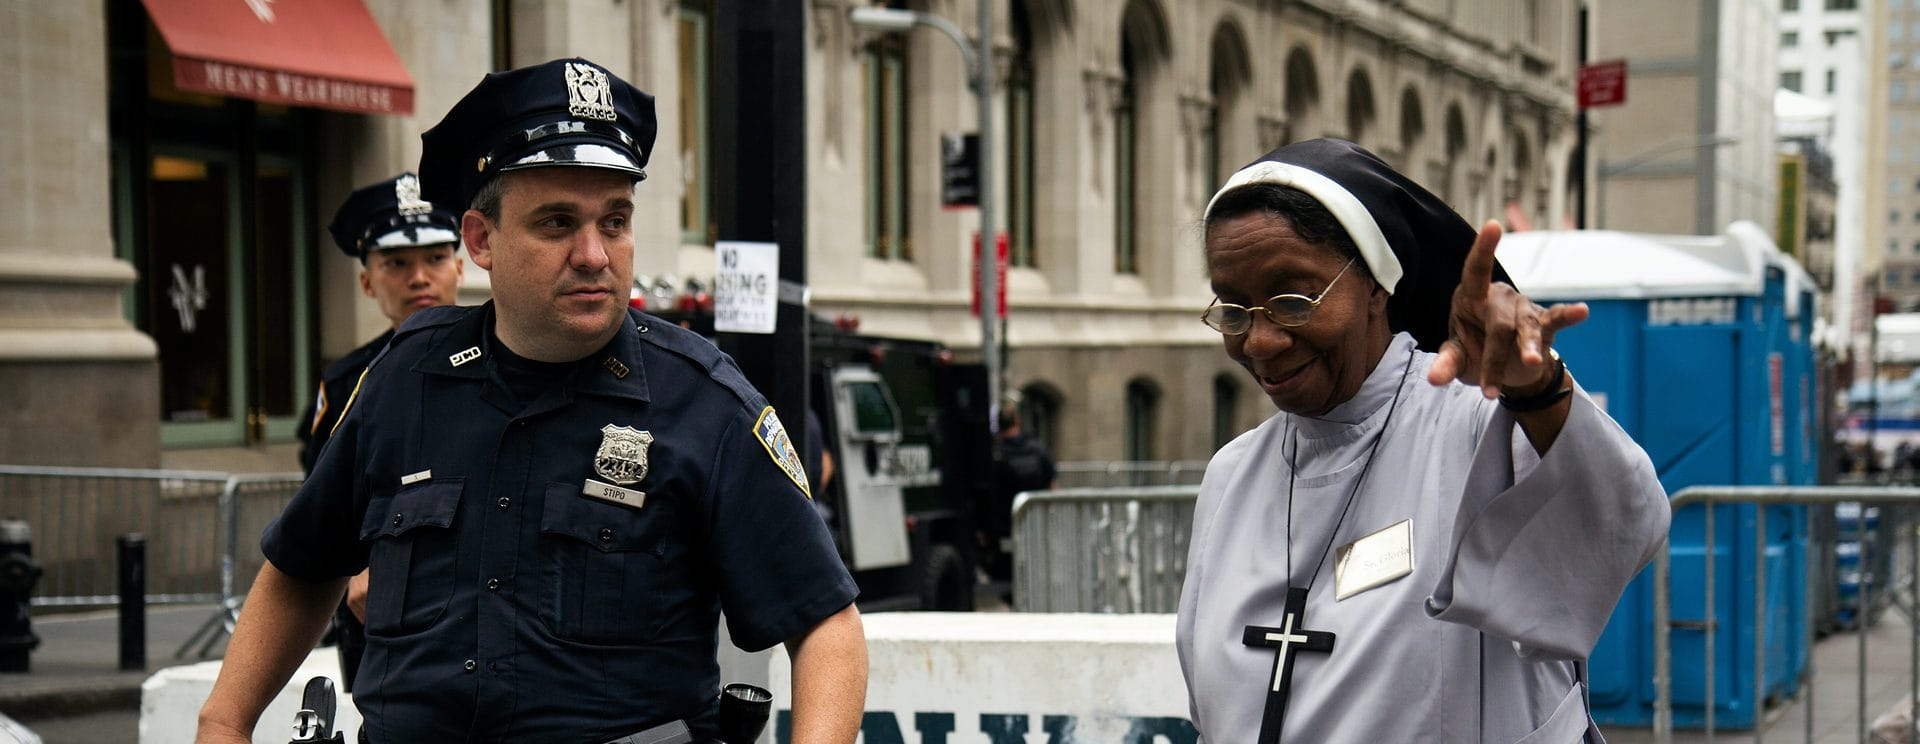 how would Jesus police